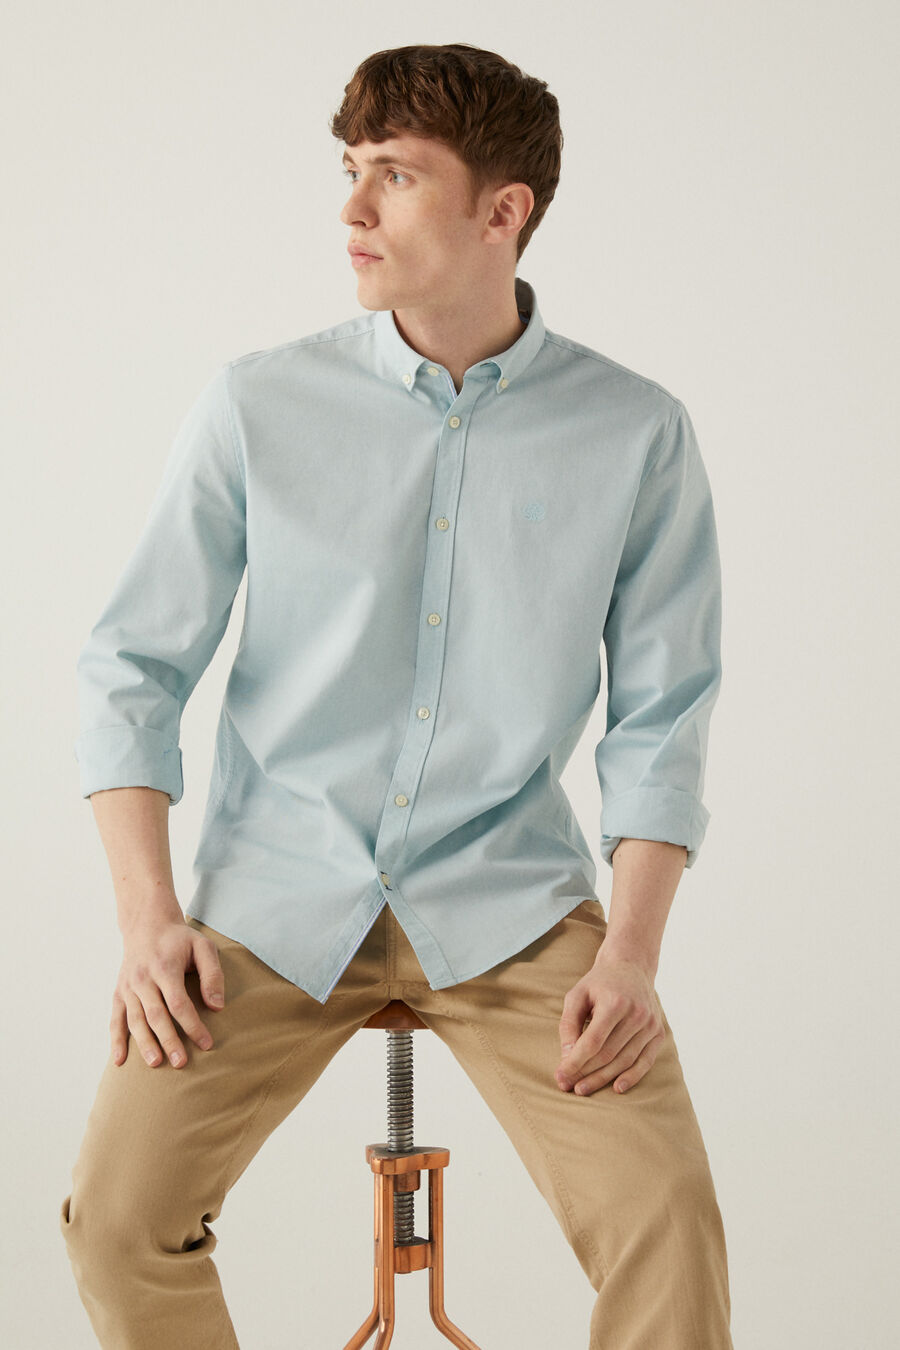 Chemise pinpoint springfield